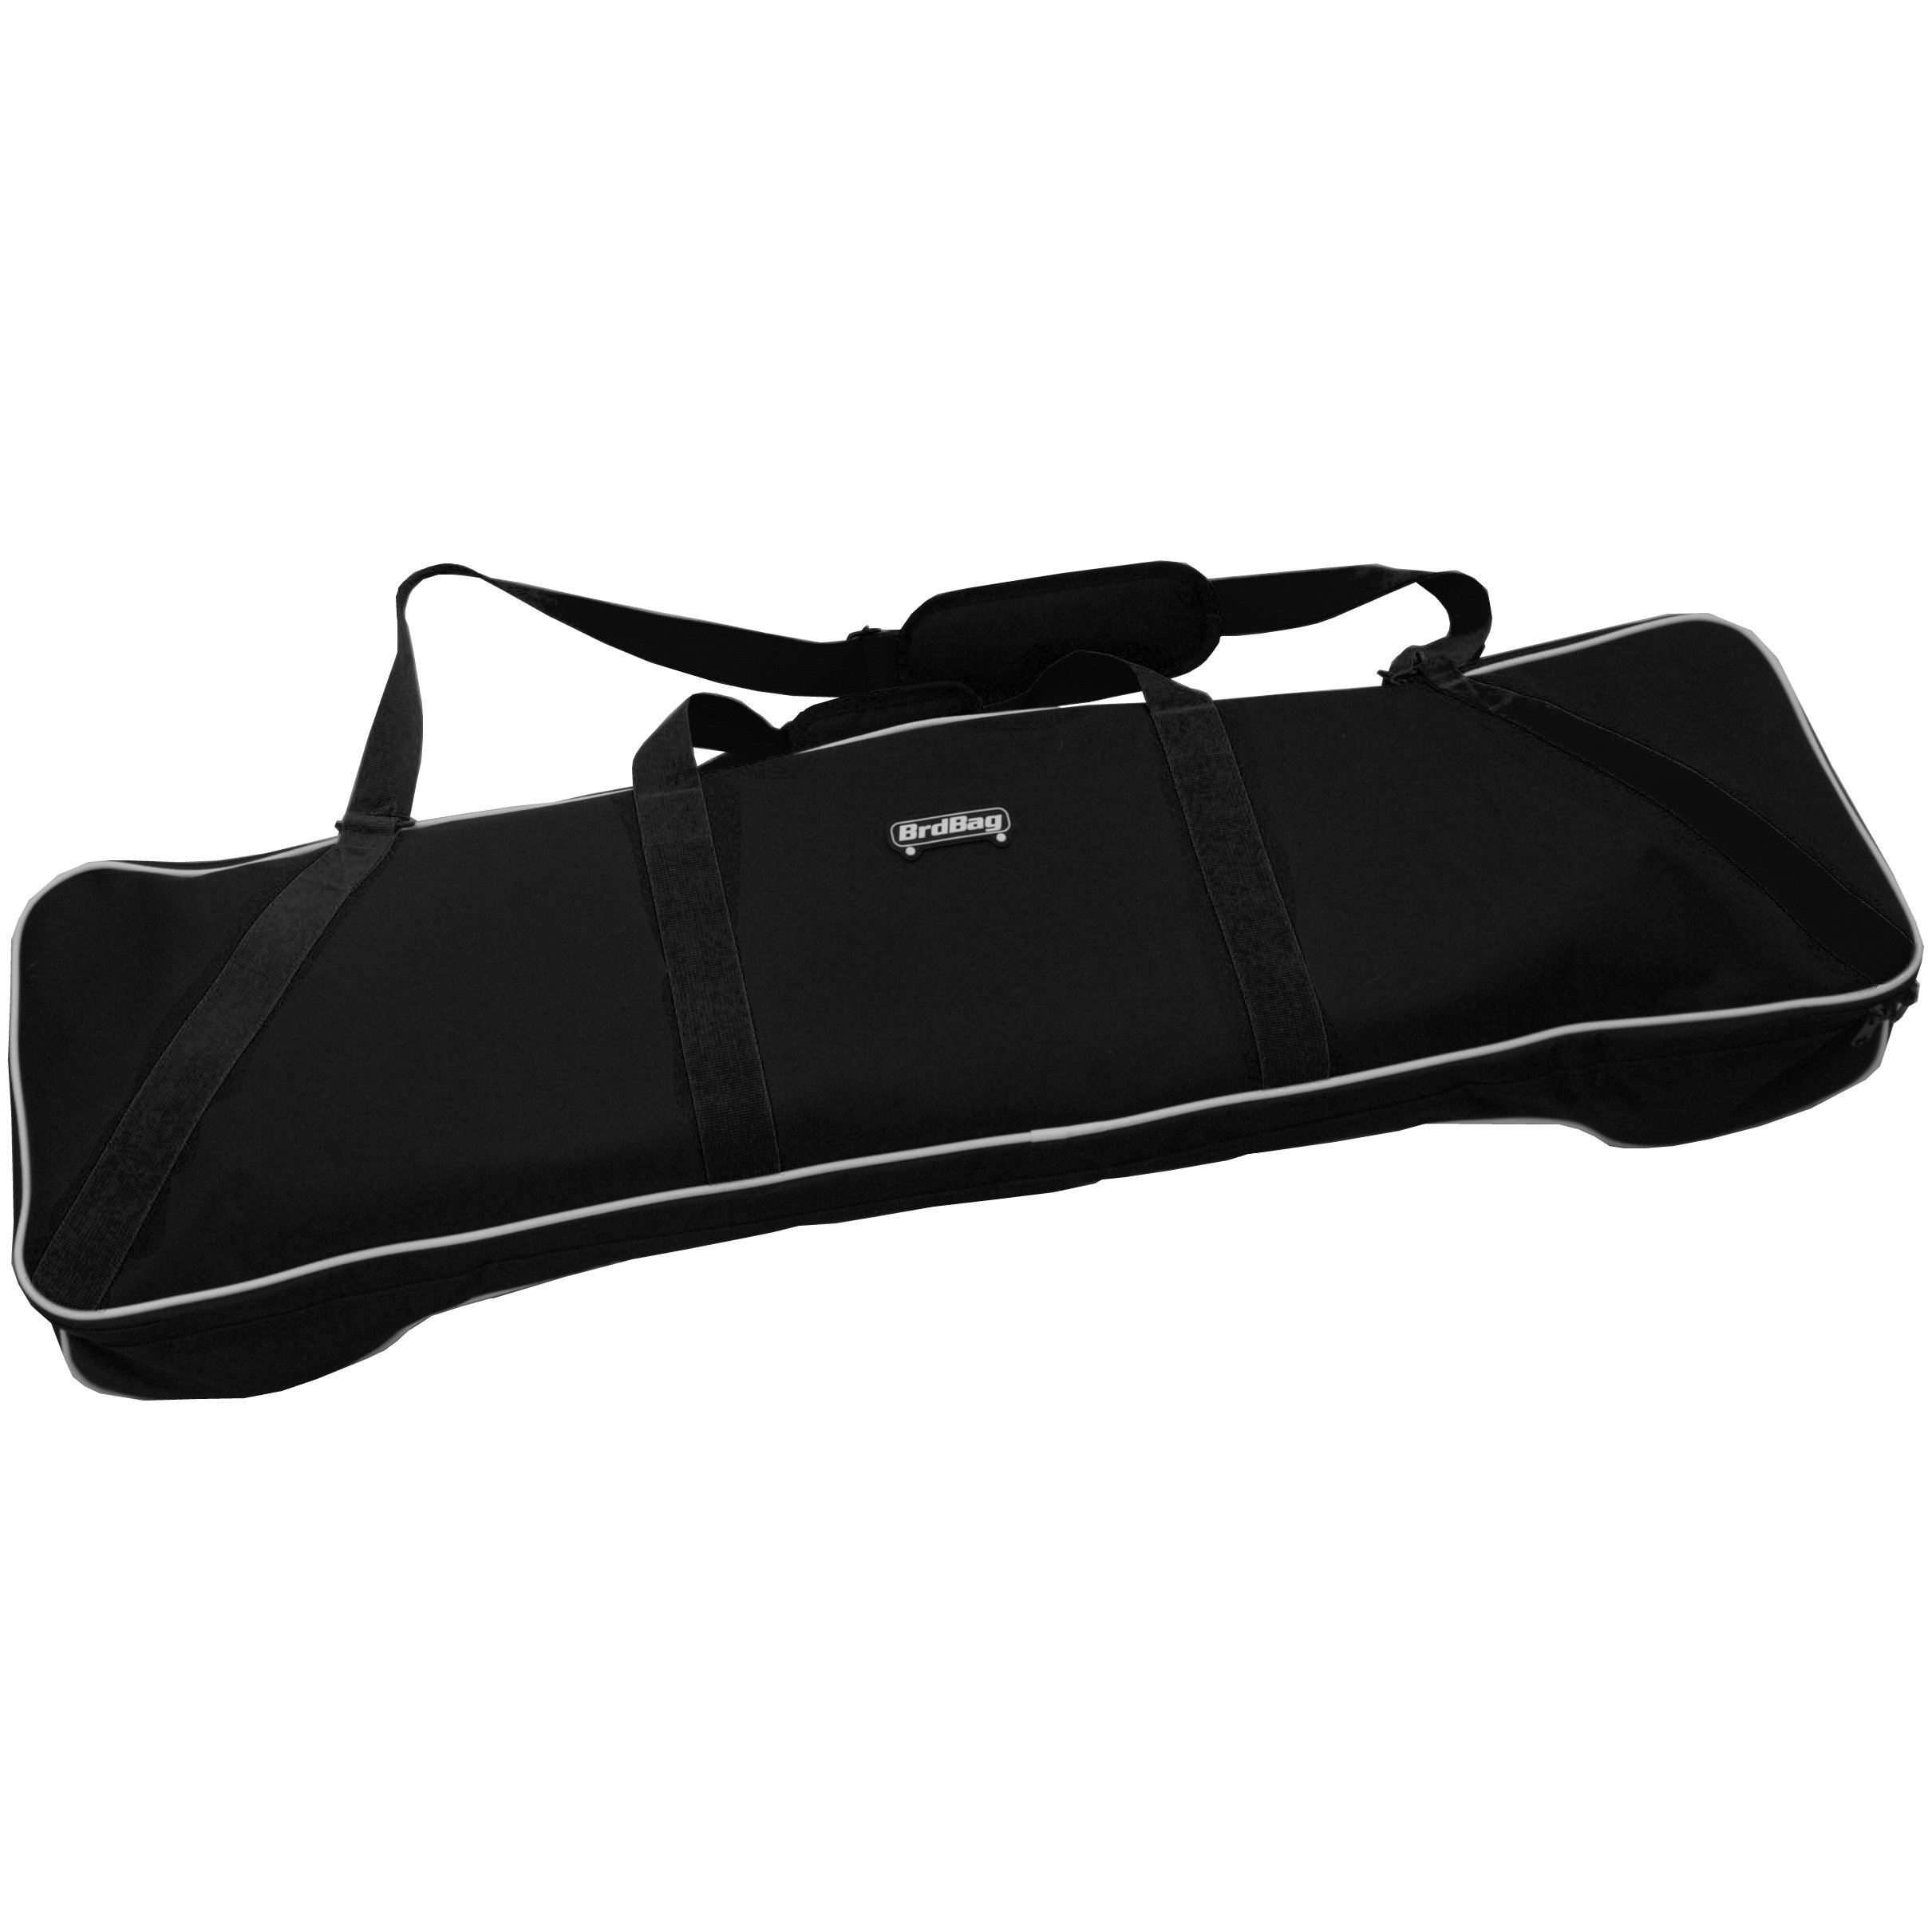 Hubro Designs BrdBag Boosted Board Bag, Black (with carry handle and shoulder strap) by Hubro Designs